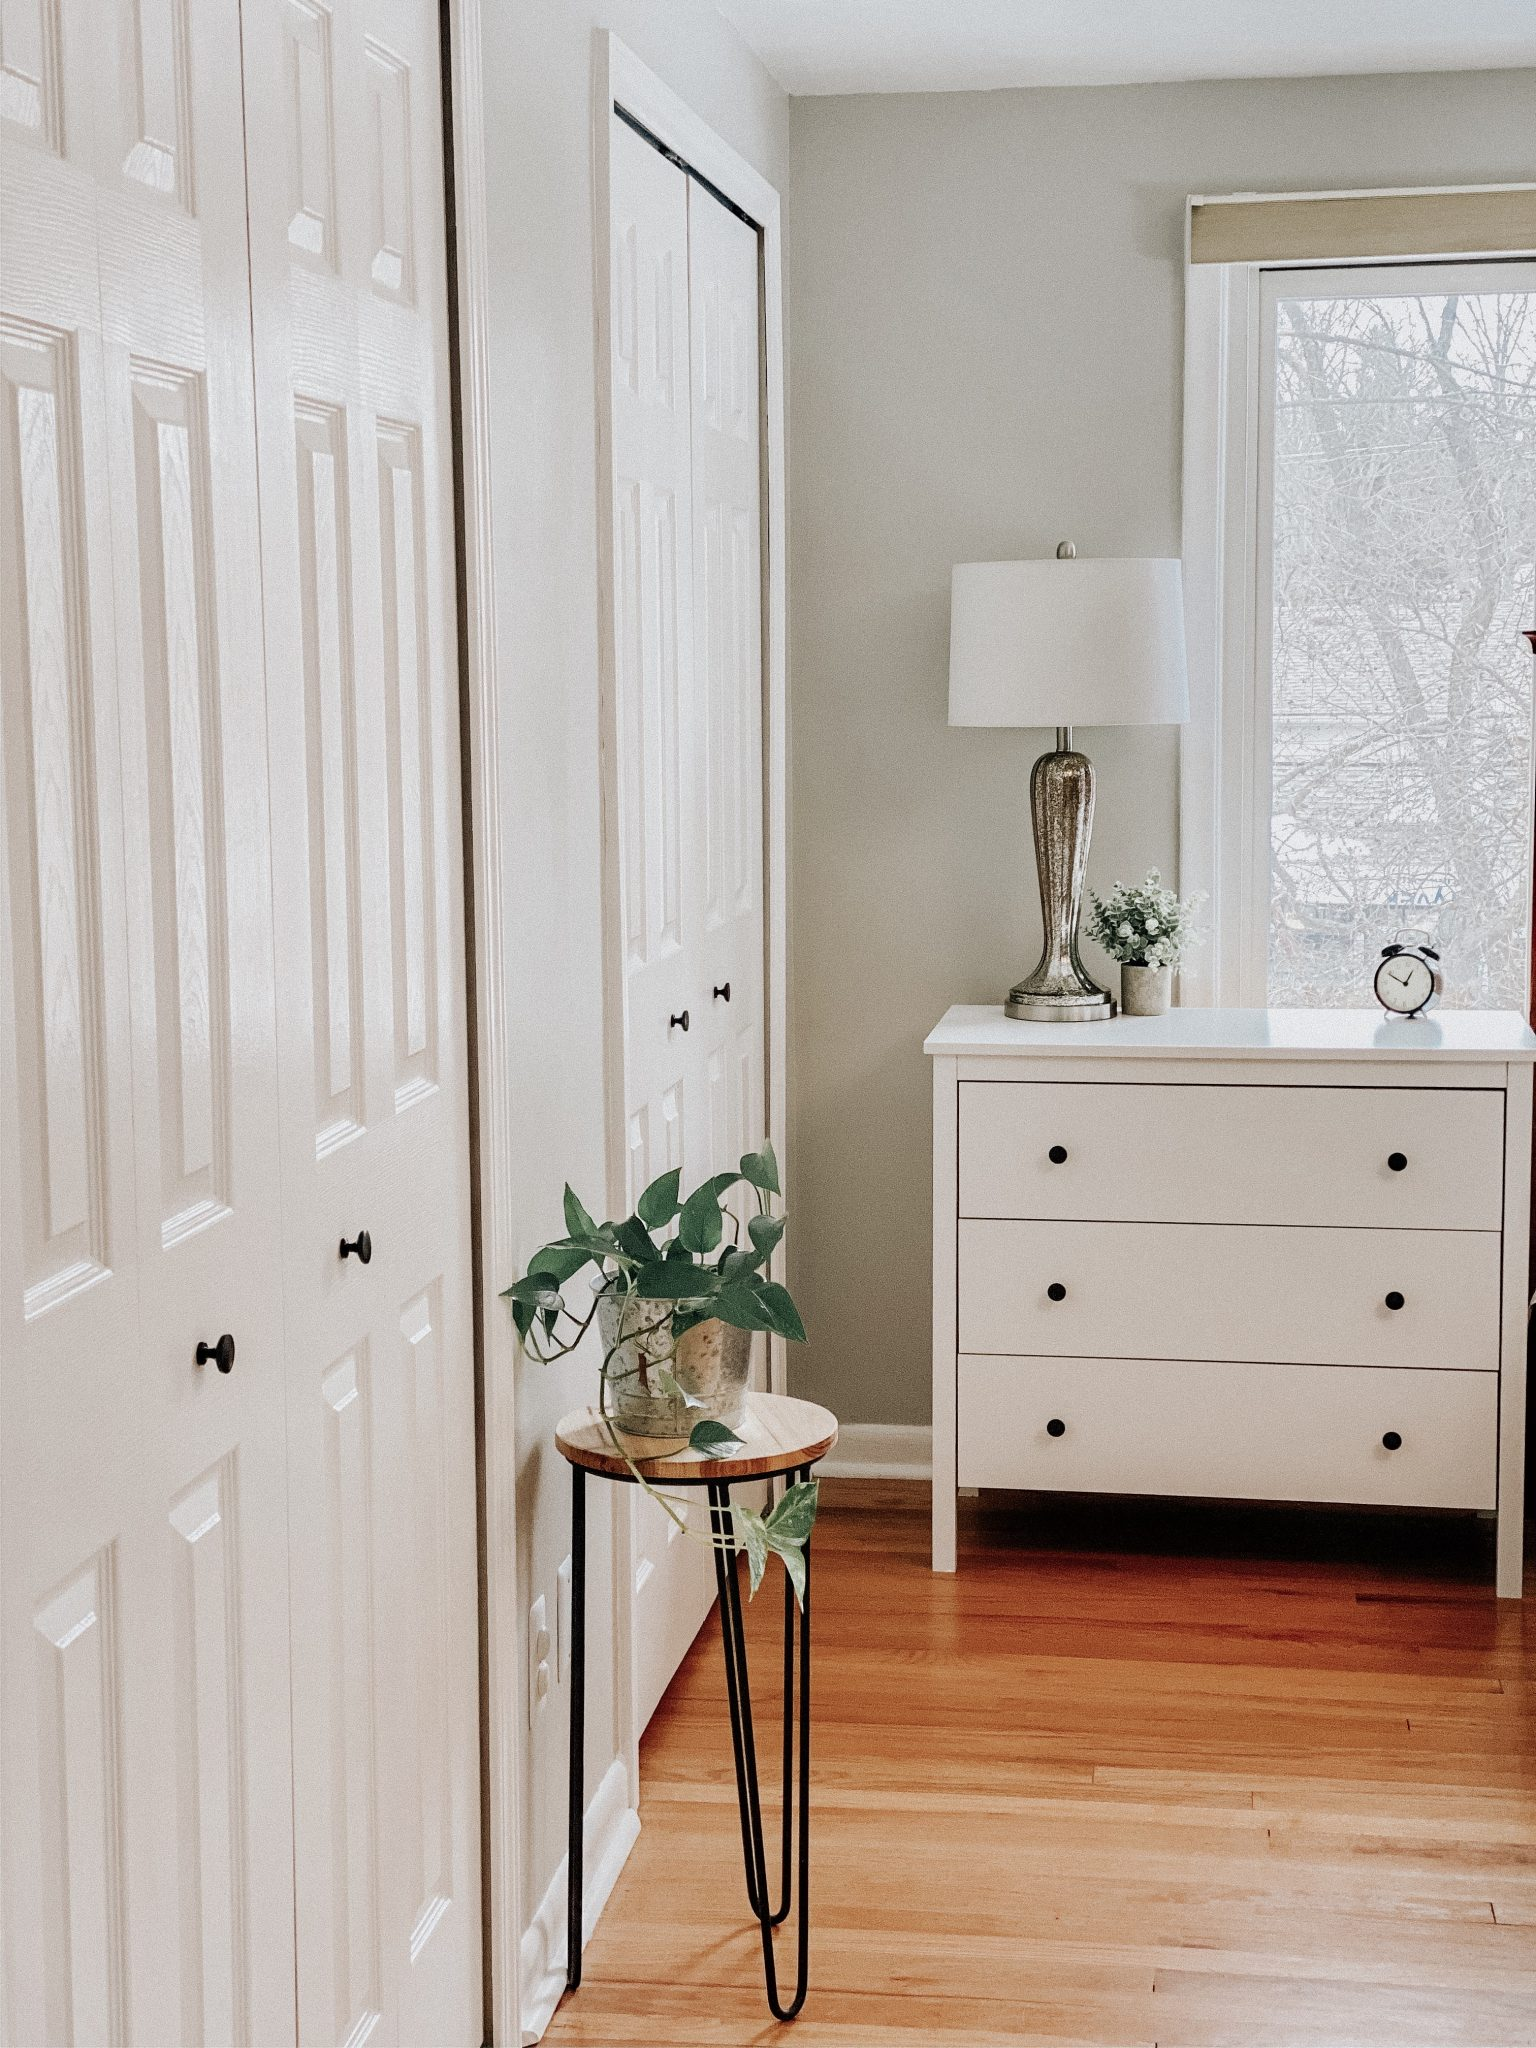 DIY Closet Makeover | Daily Splendor Life and Style Blog | finished closet #closetorganizer #smallcloset #smallspaces #organizedcloset #semicustomcloset #budgetcloset #diycloset #diyhomeproject #thehomedepot #homedepot #thecontainerstore #closetmaid #wallpaper #shoeorganization